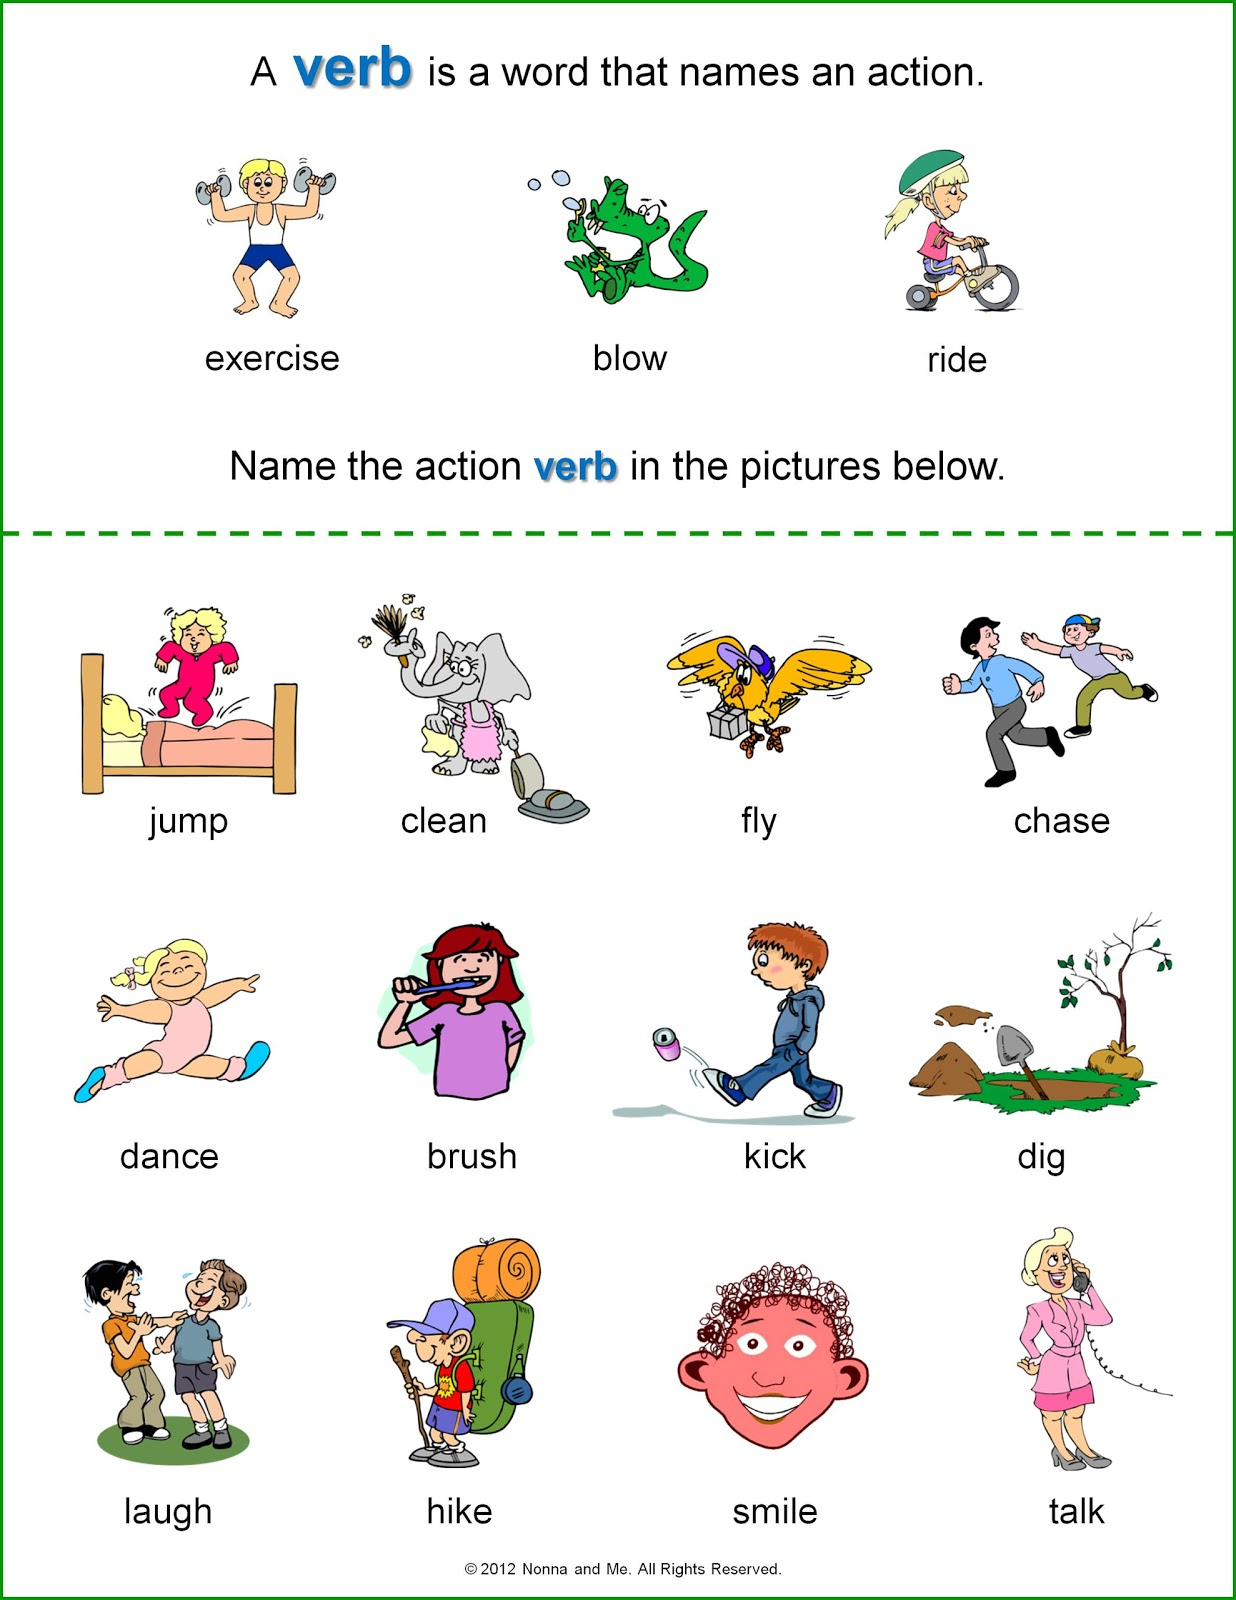 Worksheet Worksheets On Verbs For Grade 3 action verb worksheets grade 2 words exercises for math worksheet on verbs 1 coffemix 2